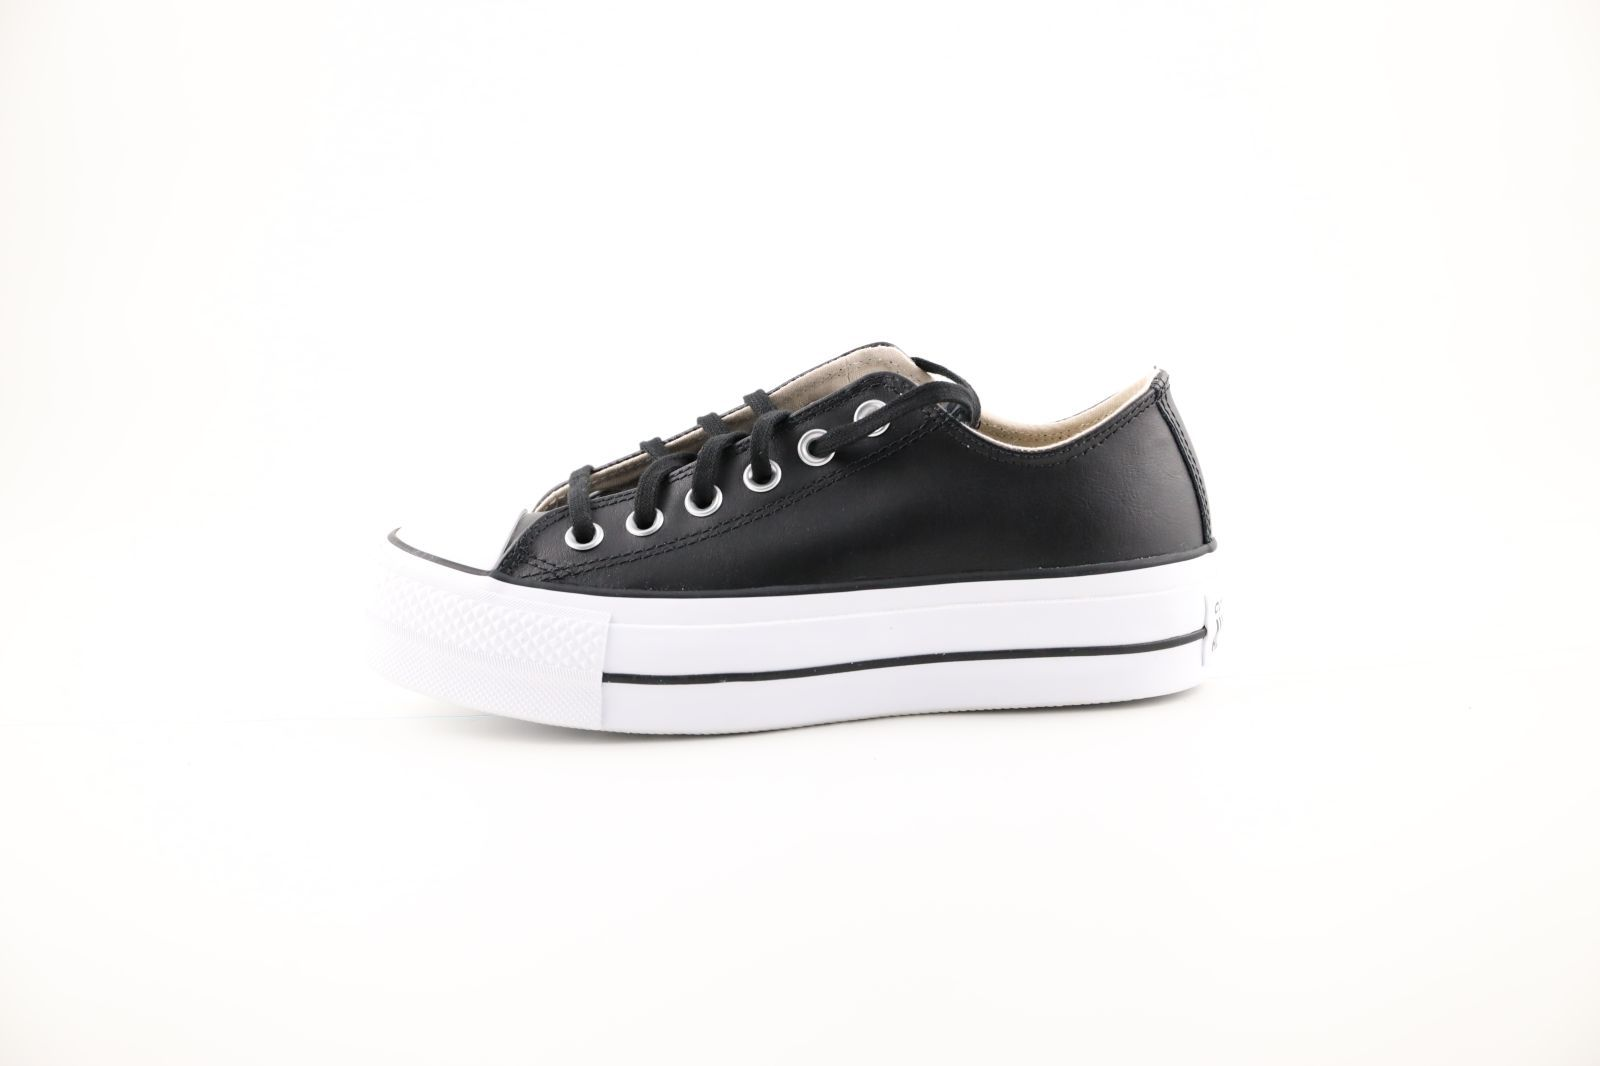 Converse Basket Noir dames (All Star Lift Clean  - 561681C) - Marques à Suivre